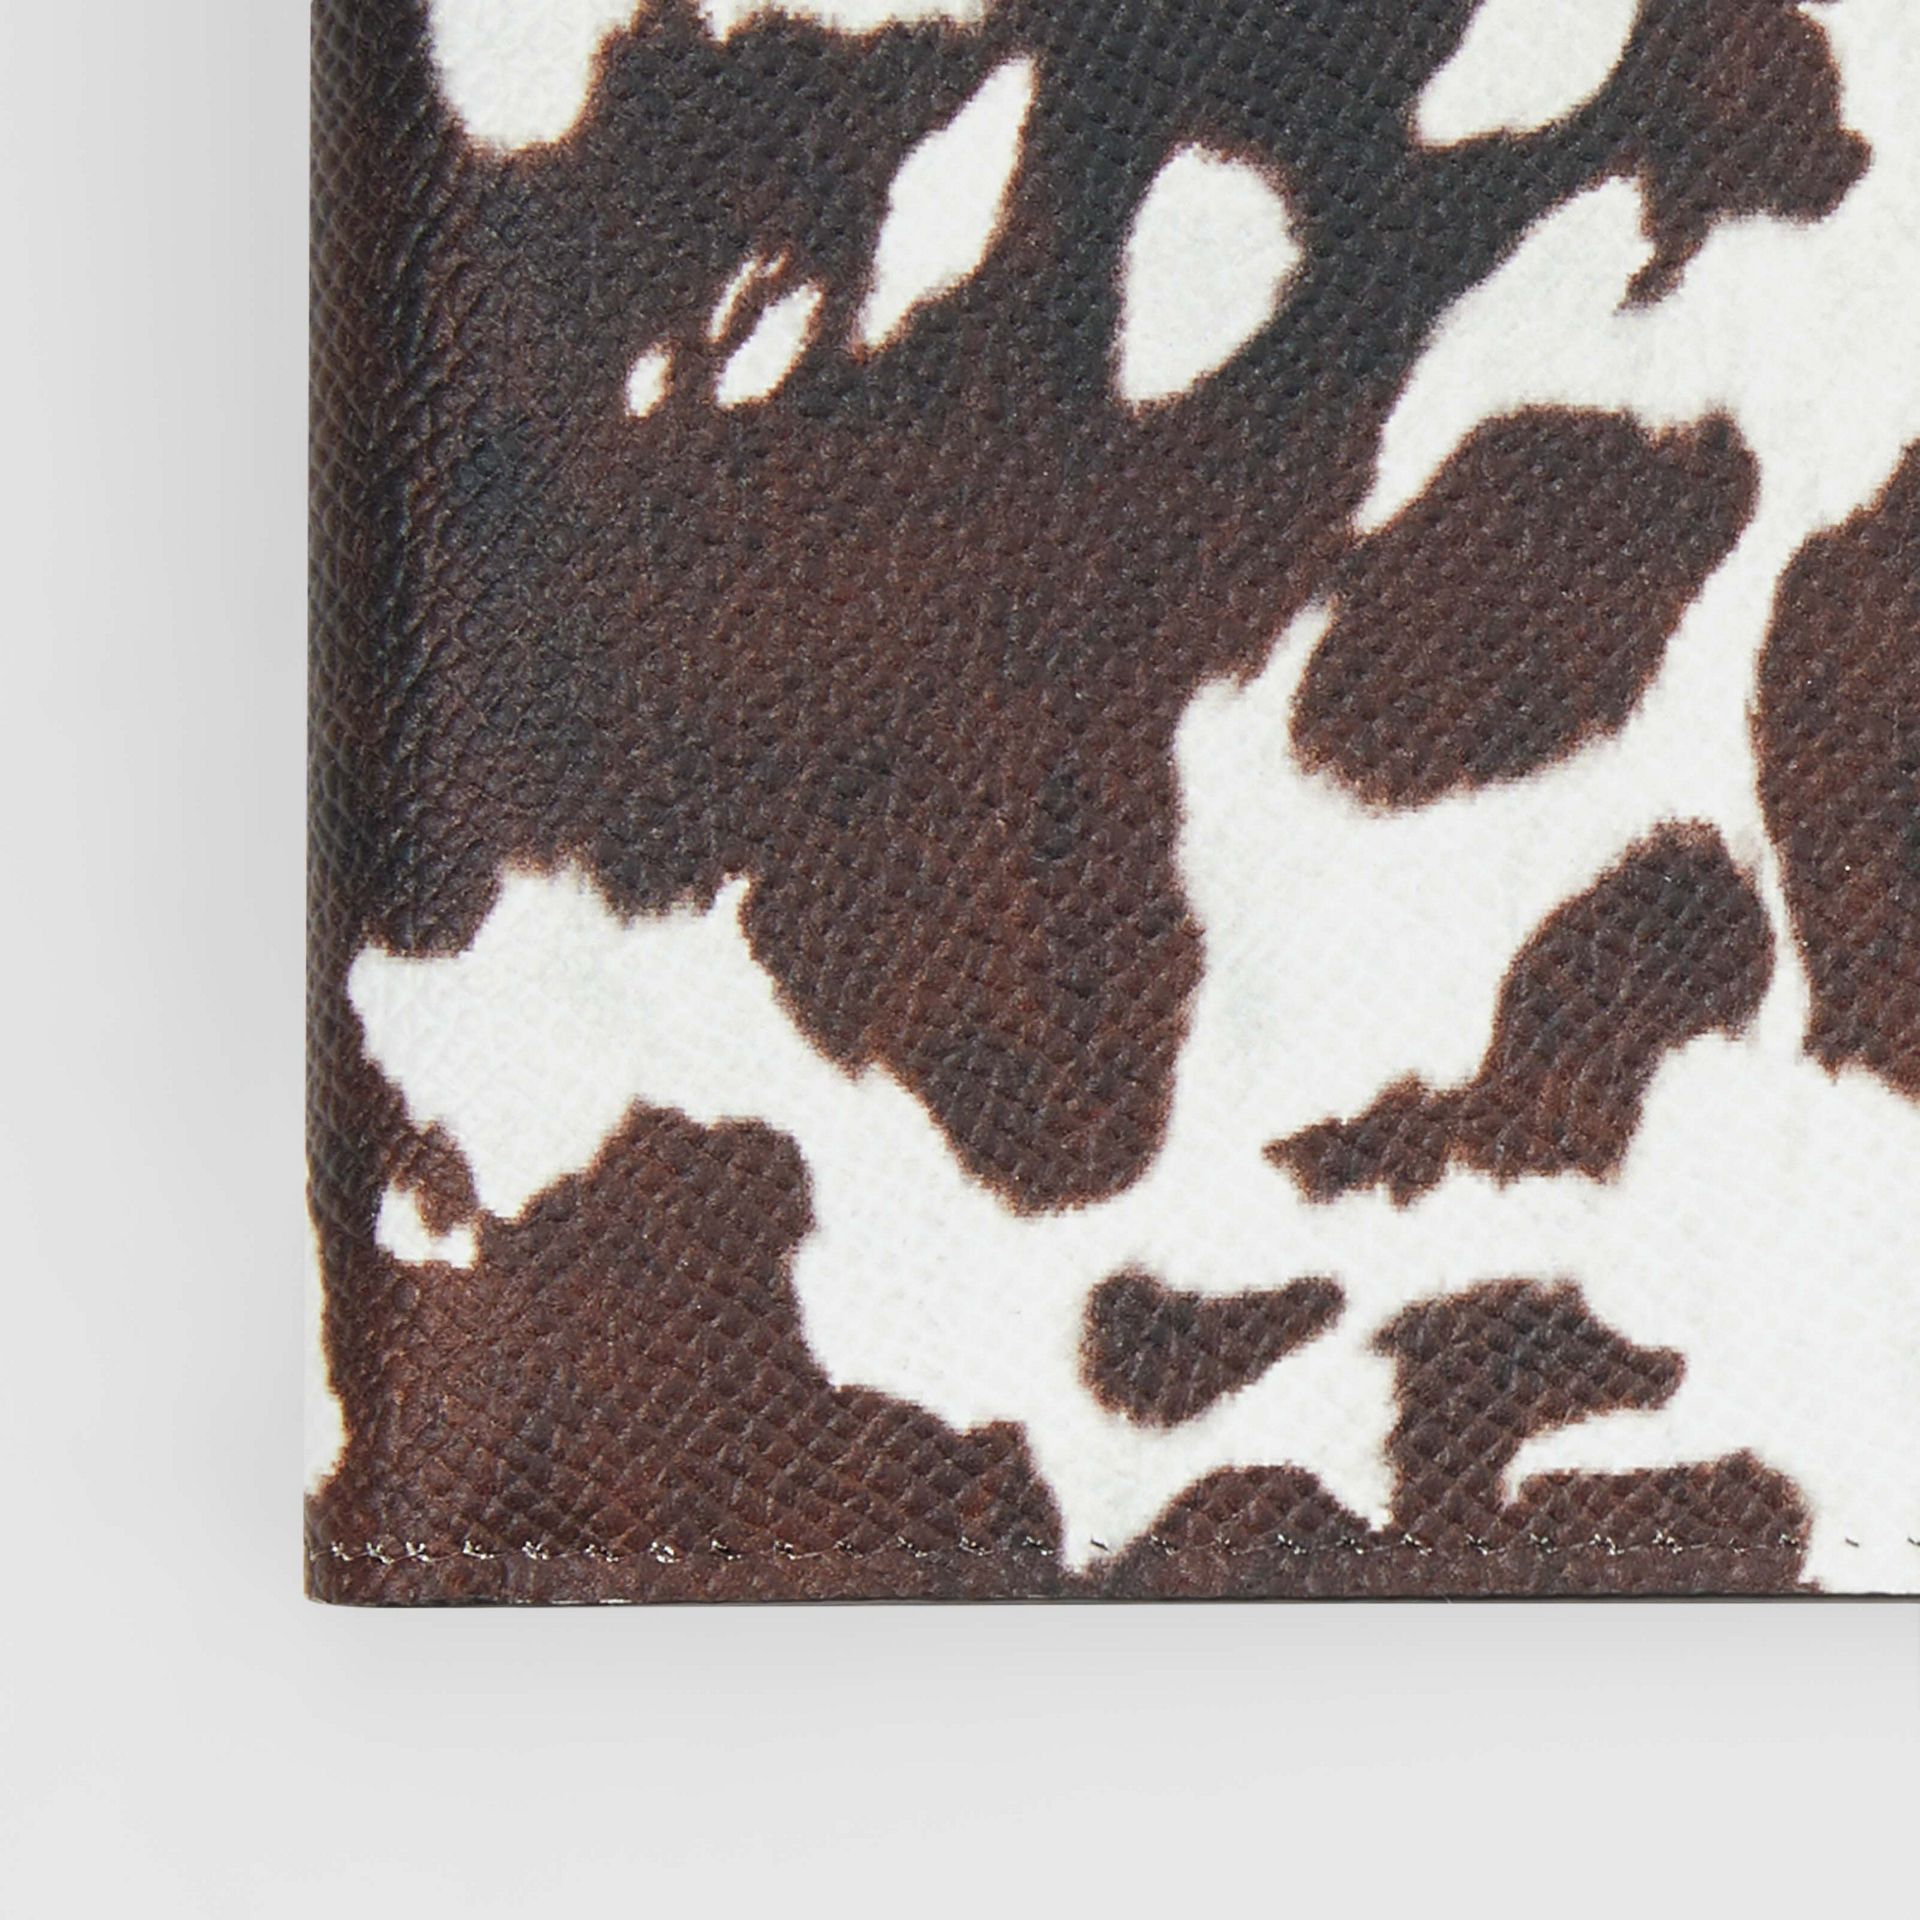 Cow Print Leather International Bifold Wallet in Black/white - Men | Burberry Canada - gallery image 1